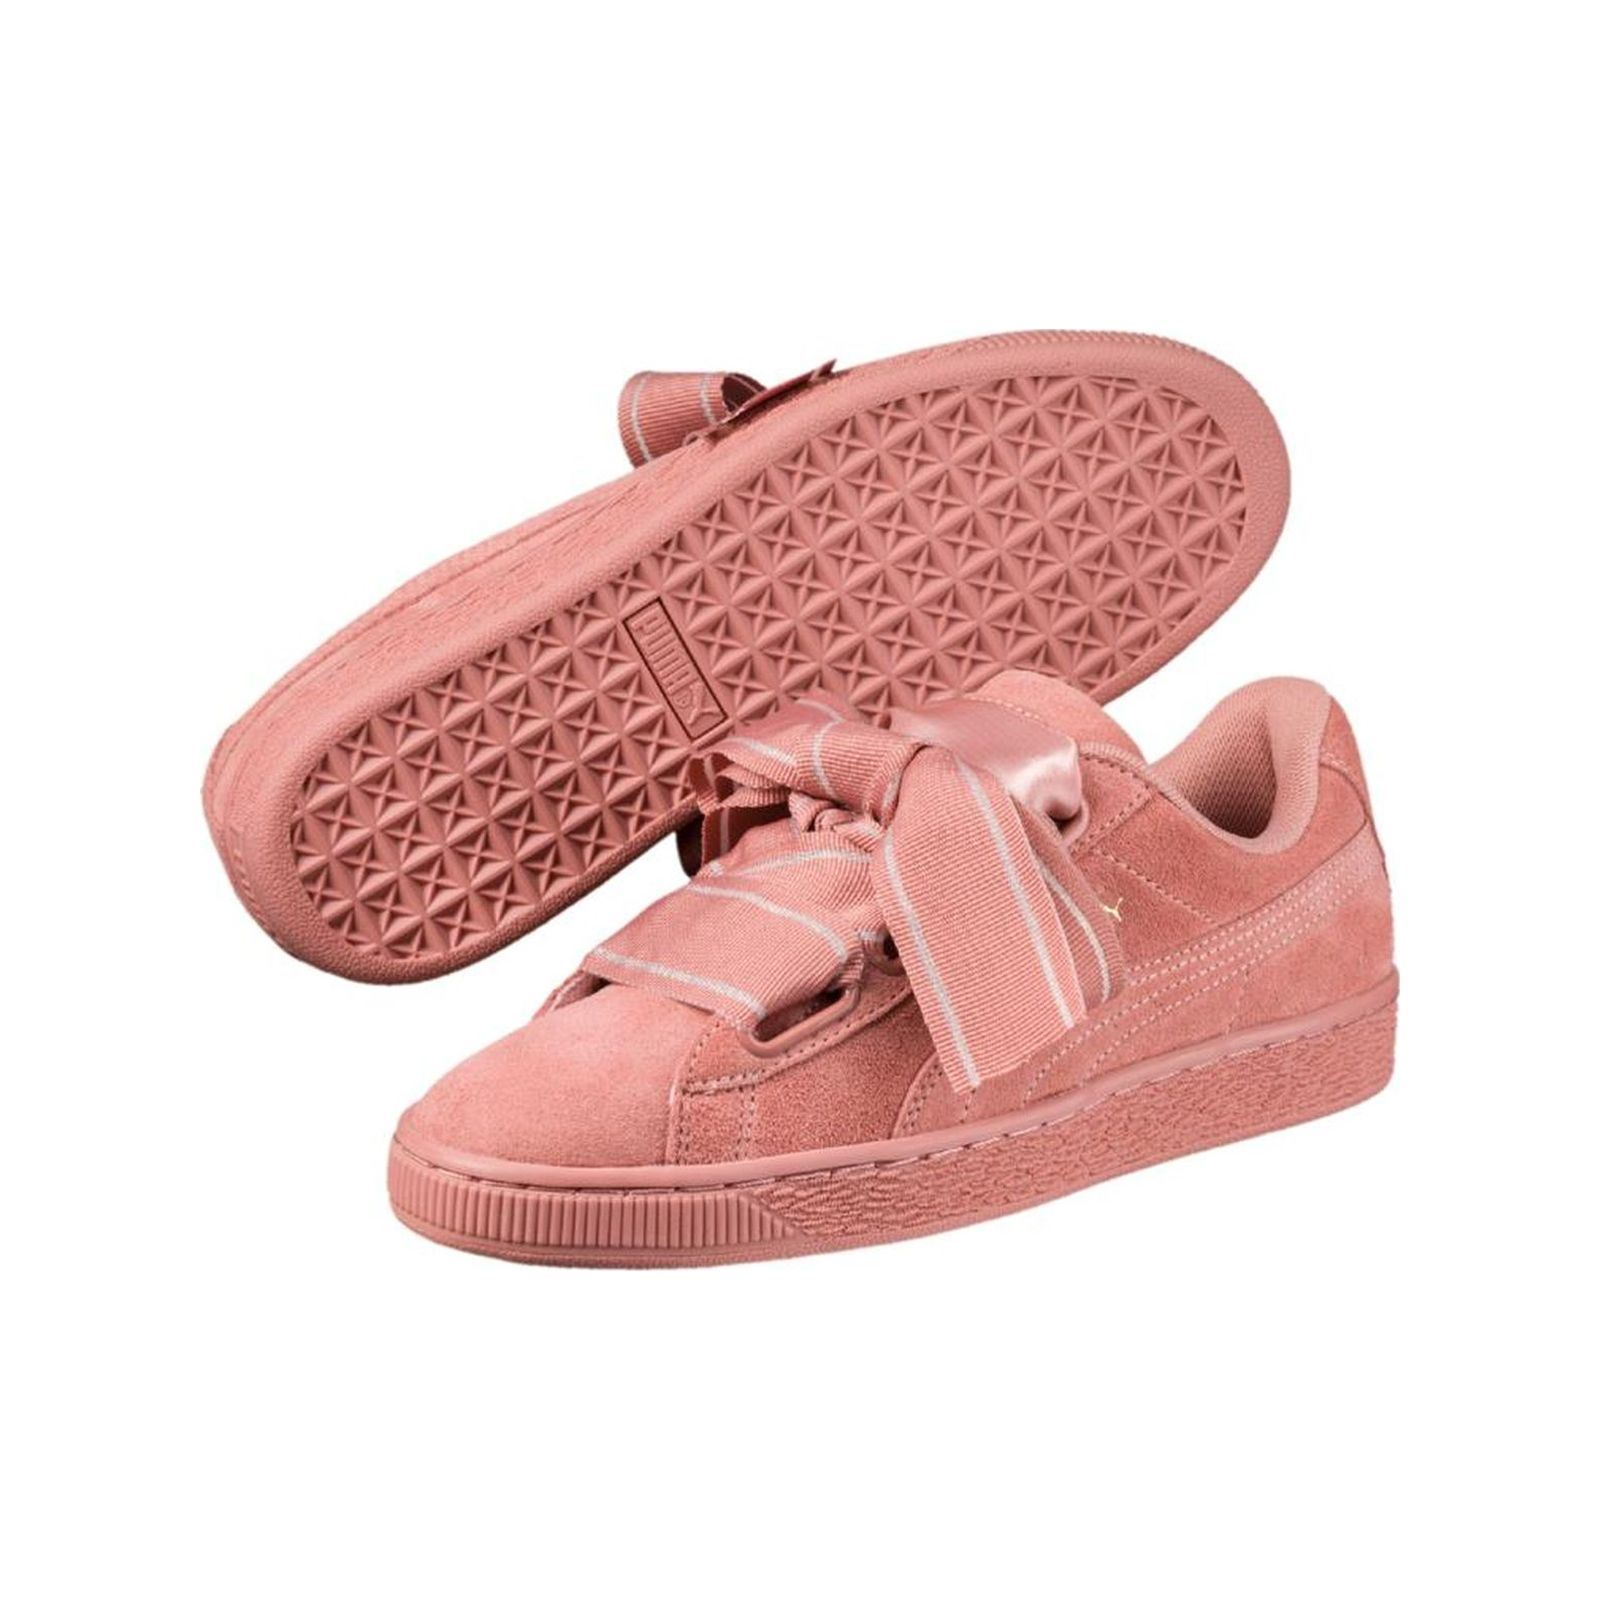 Puma Heart satin ll - Baskets en cuir - rose AXBcU